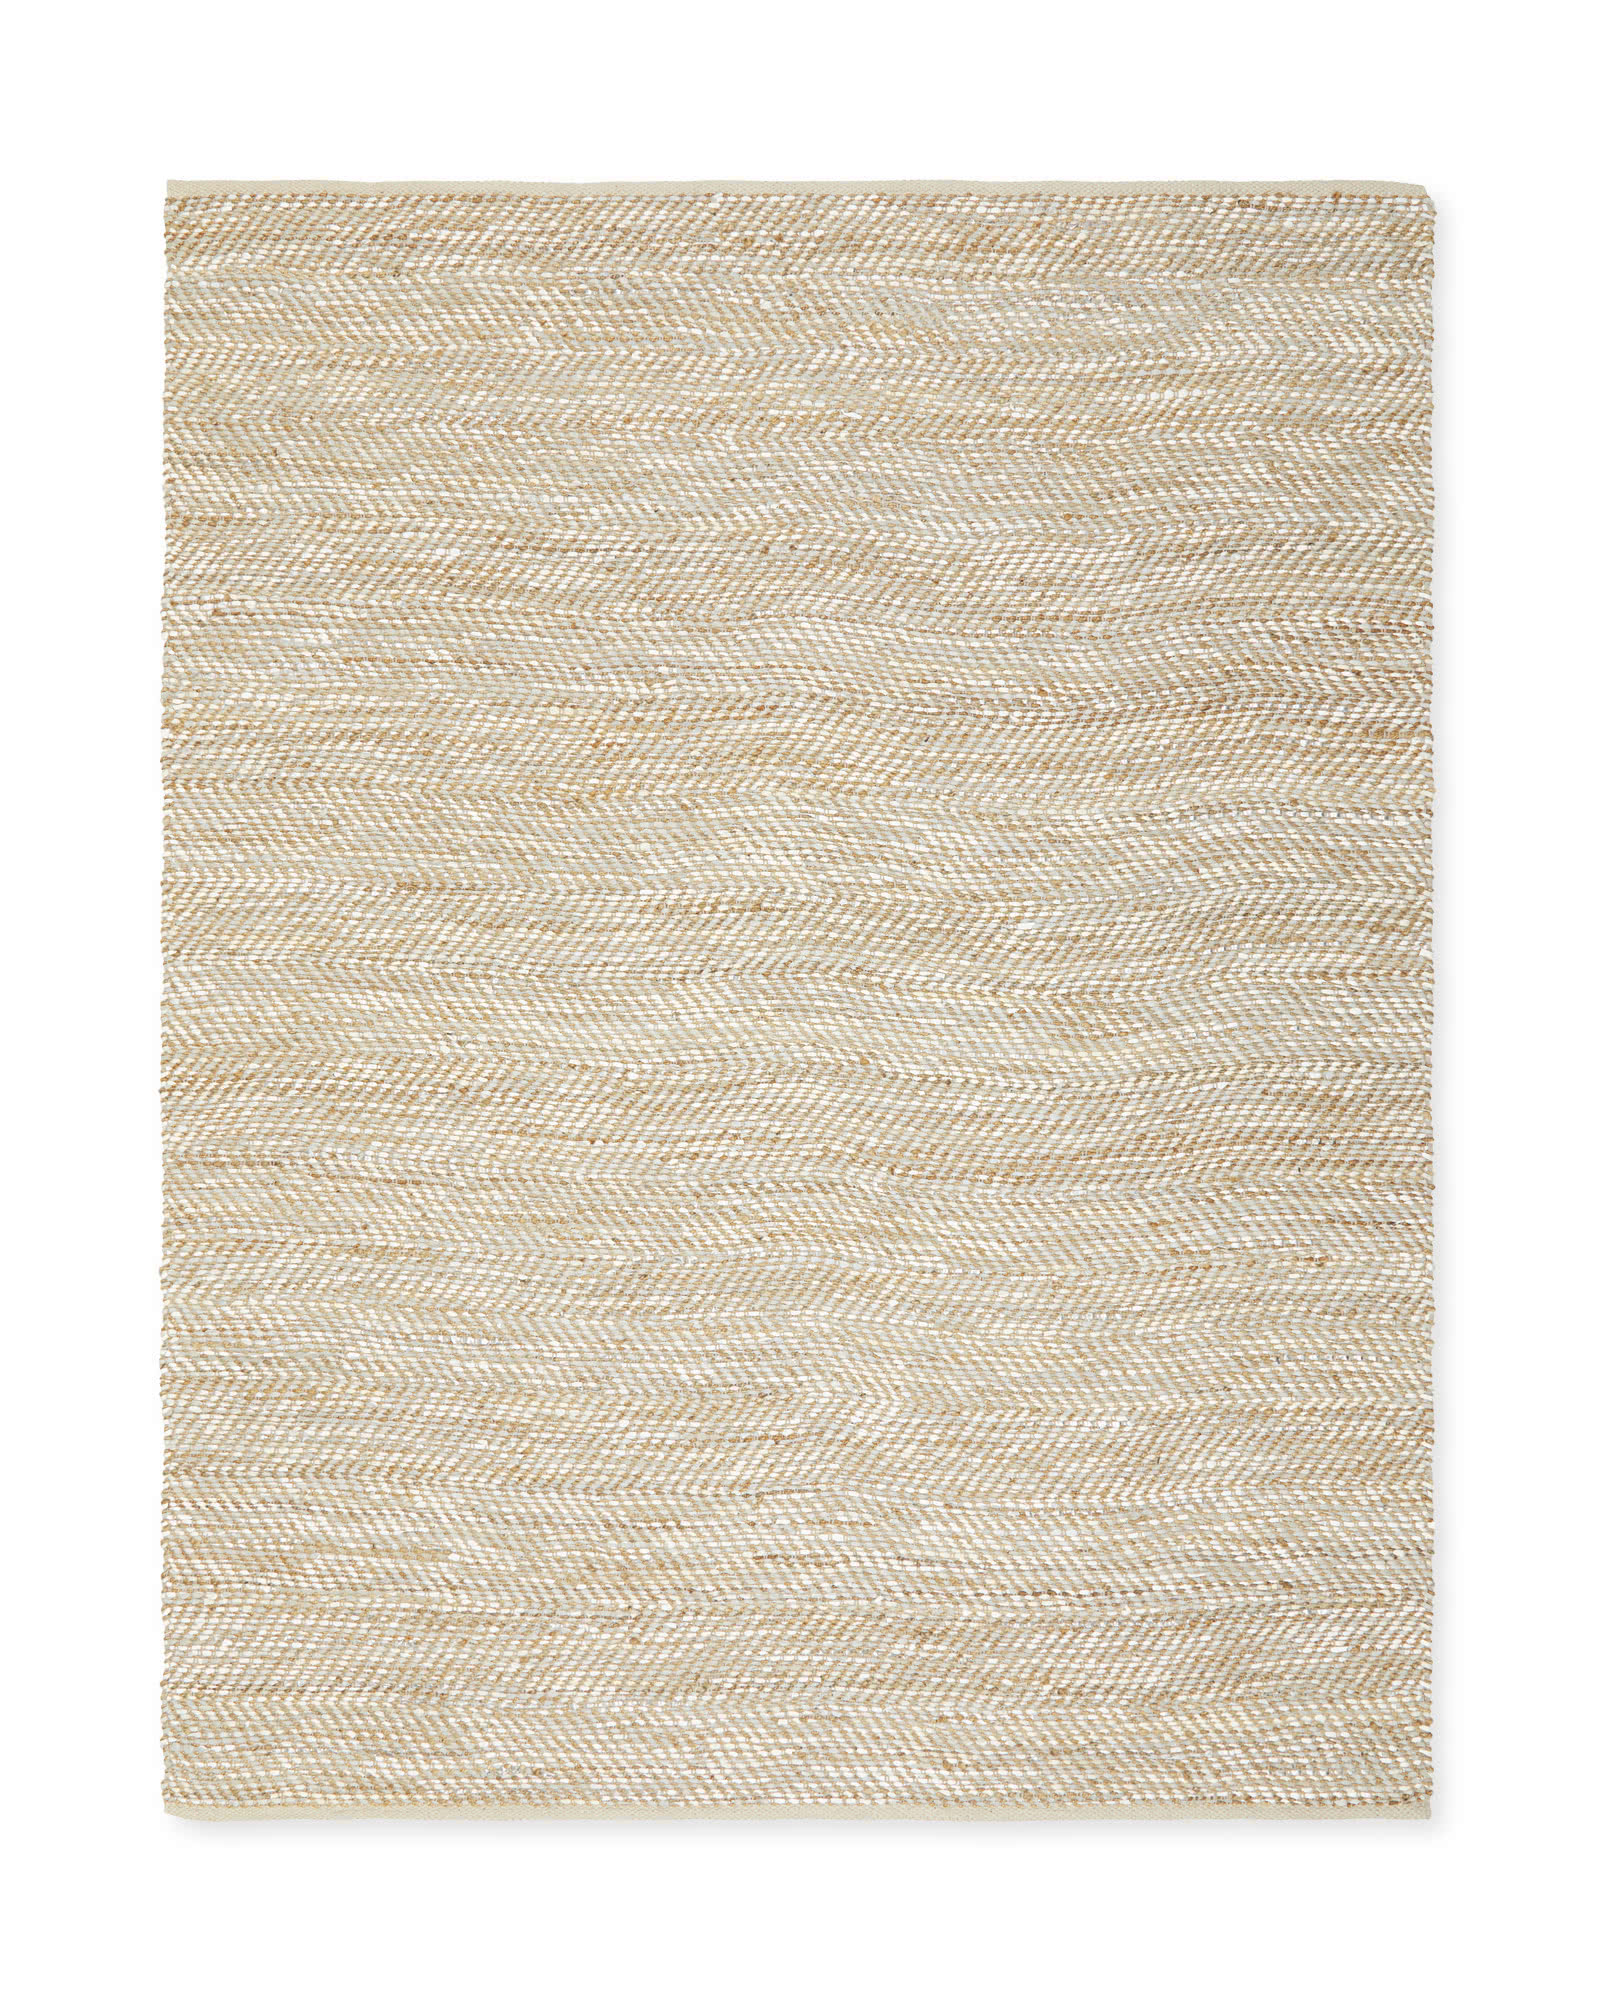 Metallic Suede & Hemp Rug,